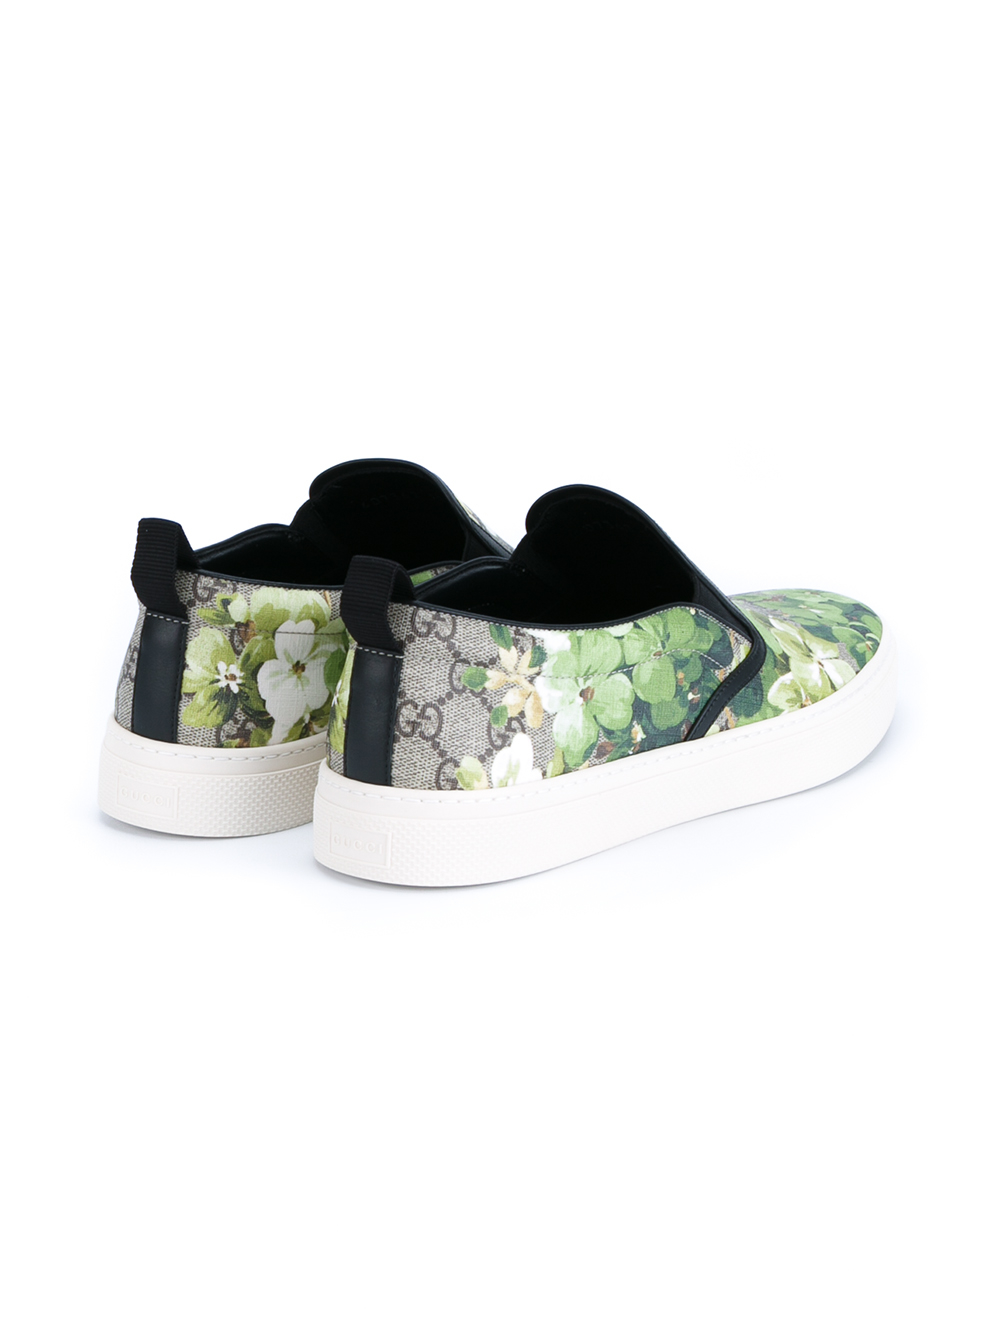 Lyst Gucci Floral Printed Leather Shoes In Green For Men